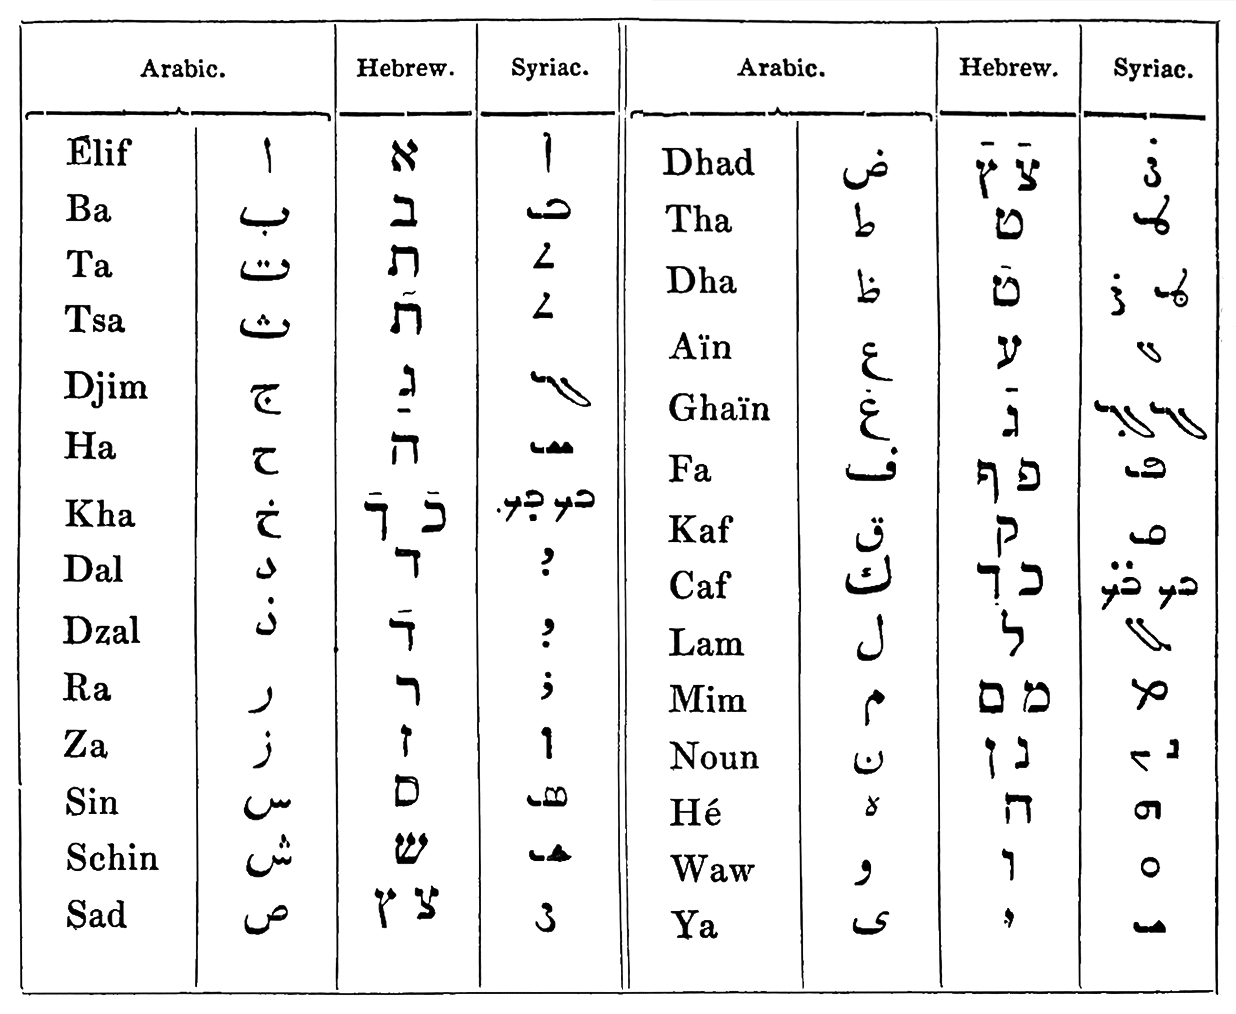 Arabic A Dictionary Of The Art Of Printing